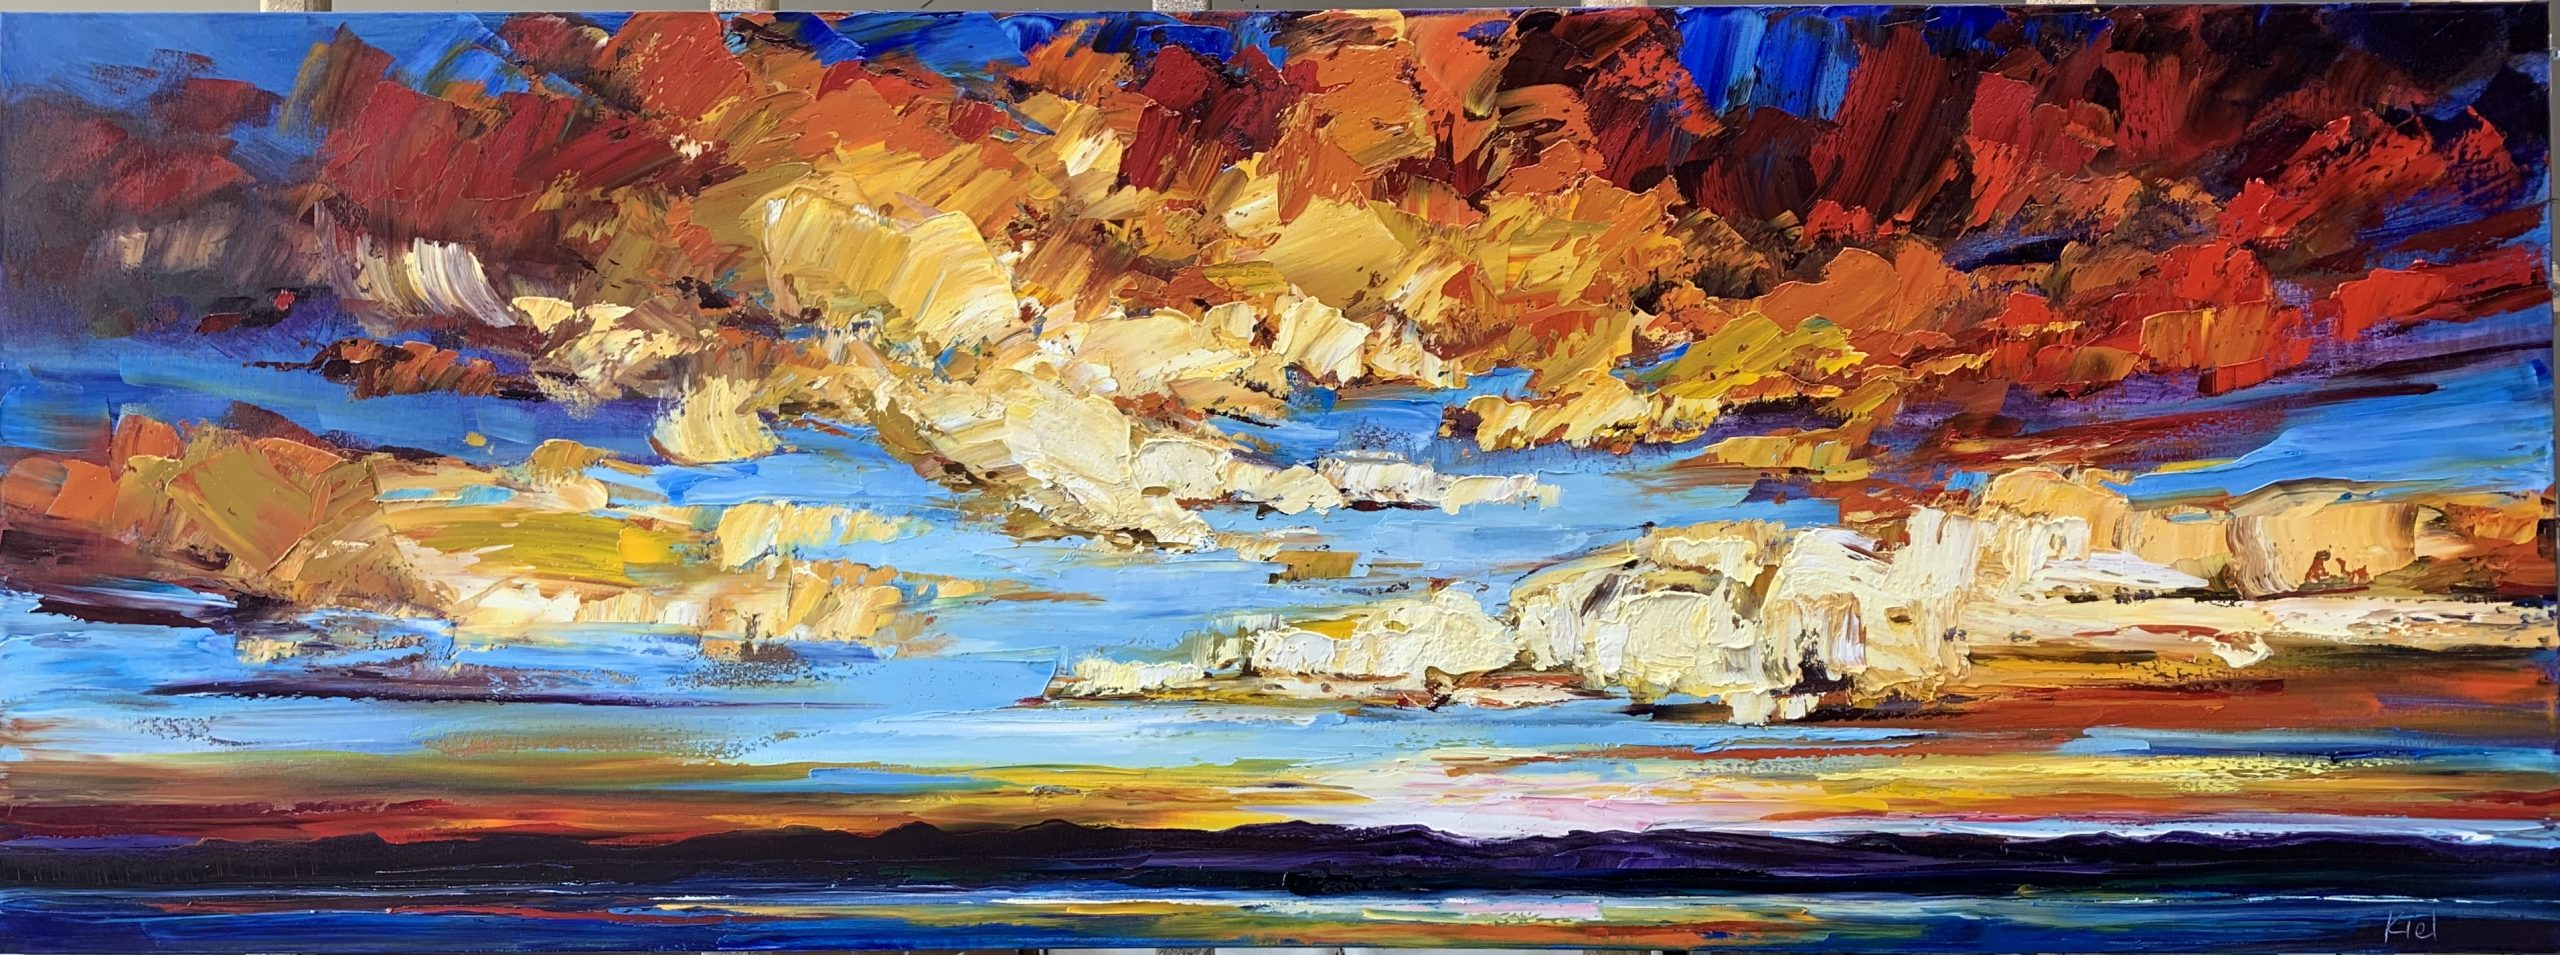 A Life Uncategorized Between the Moments, oil sunset painting by Kimberly Kiel | Effusion Art Gallery + Cast Glass Studio, Invermere BC